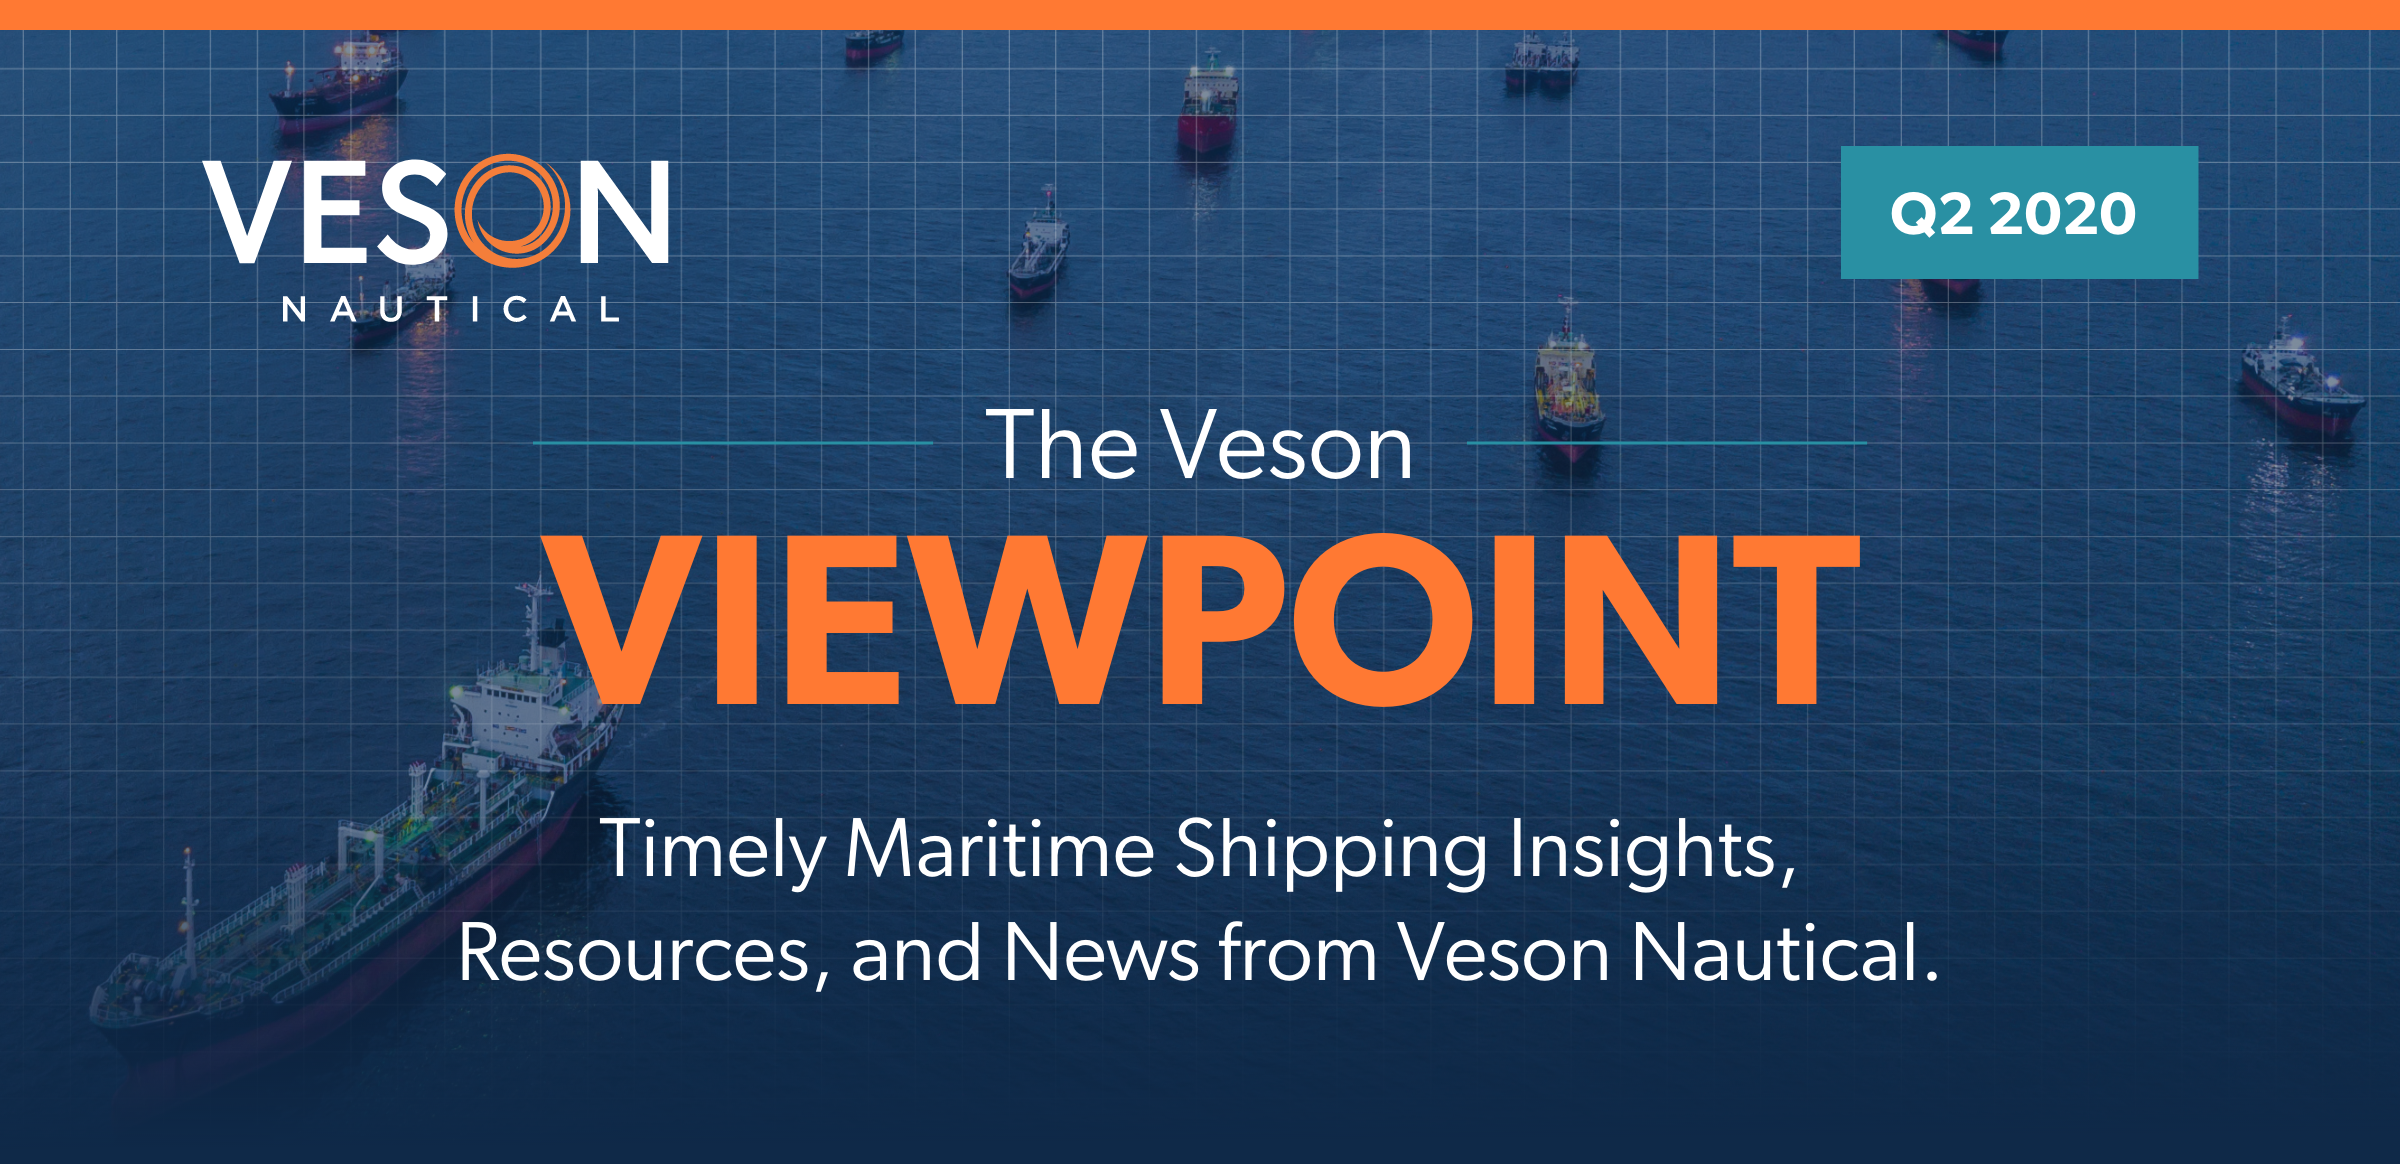 The Veson Viewpoint - Timely Maritime Shipping Insights, Resources, and News from Veson Nautical.